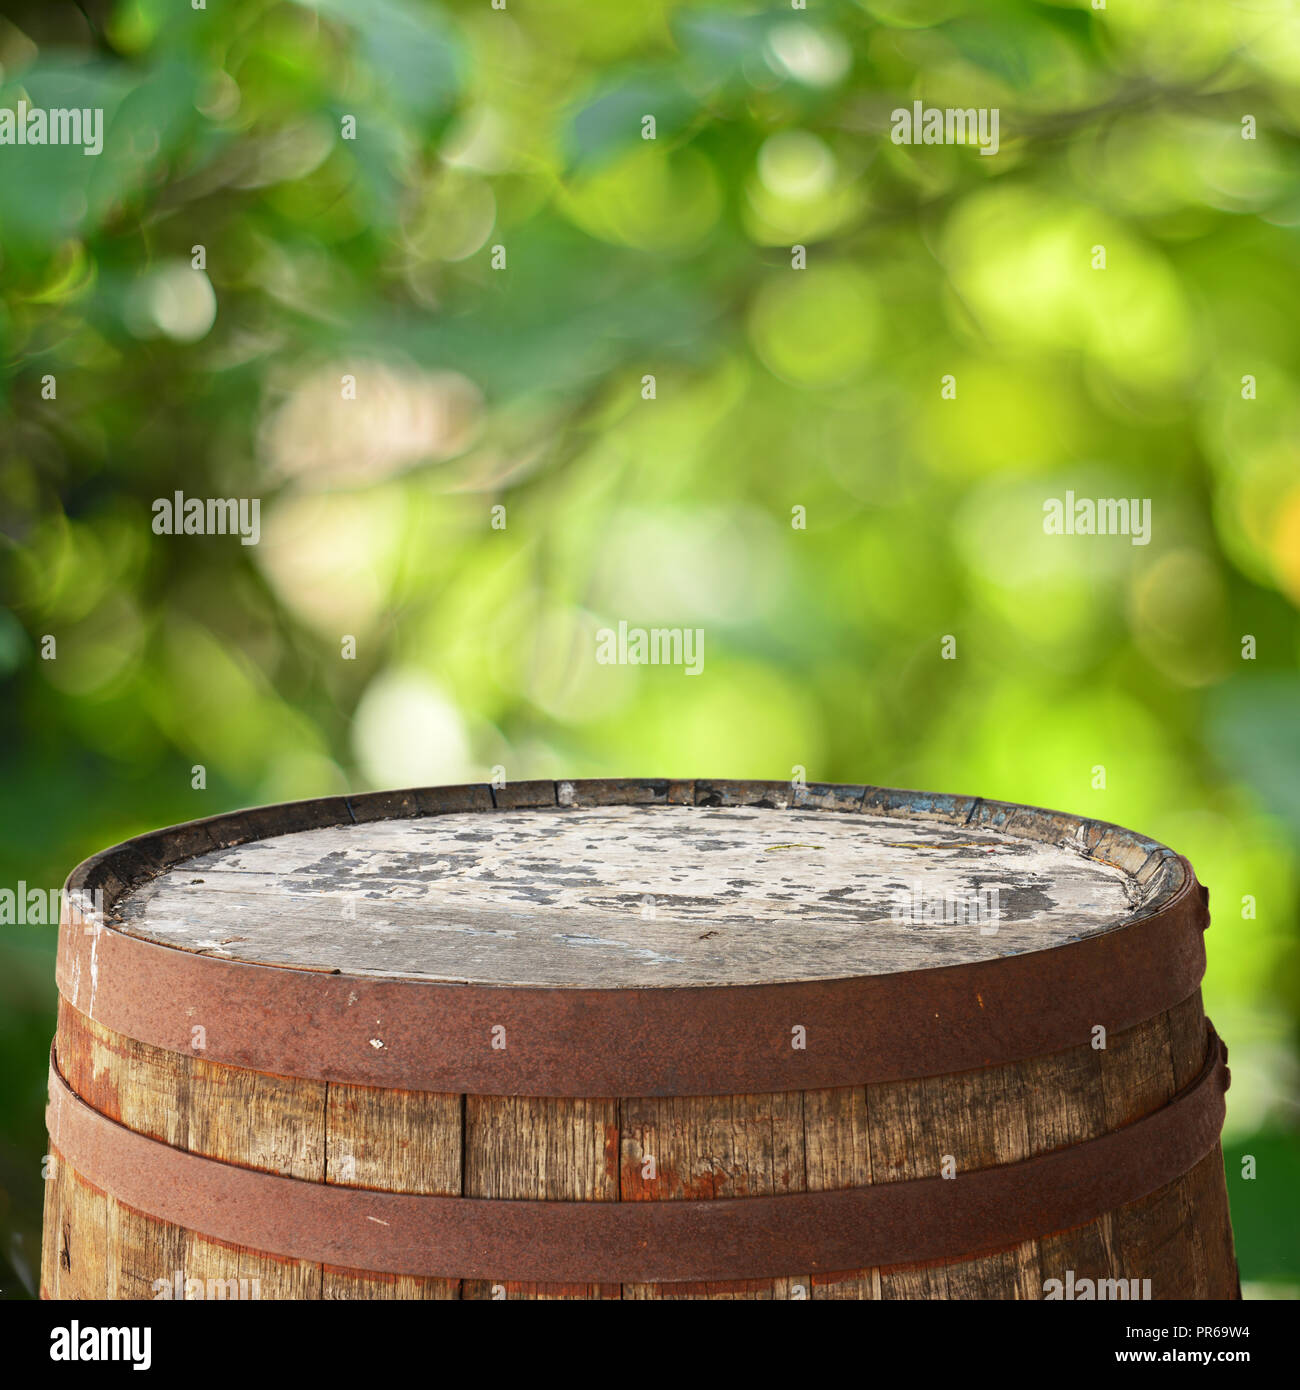 Barrel top background - Stock Image